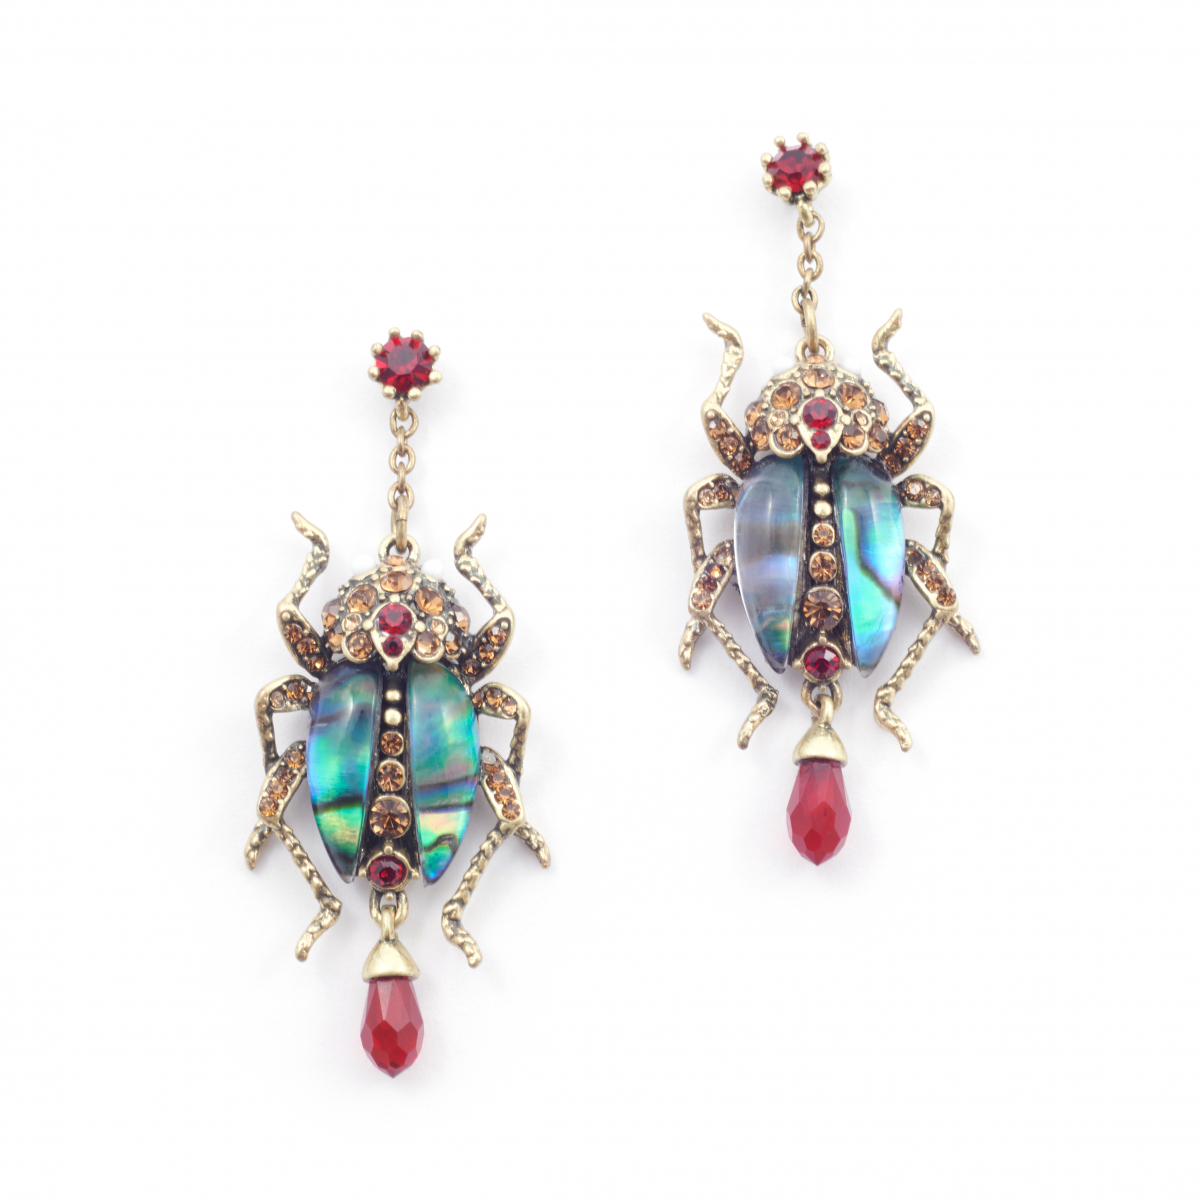 The Bejewelled Beetle Statement Earrings